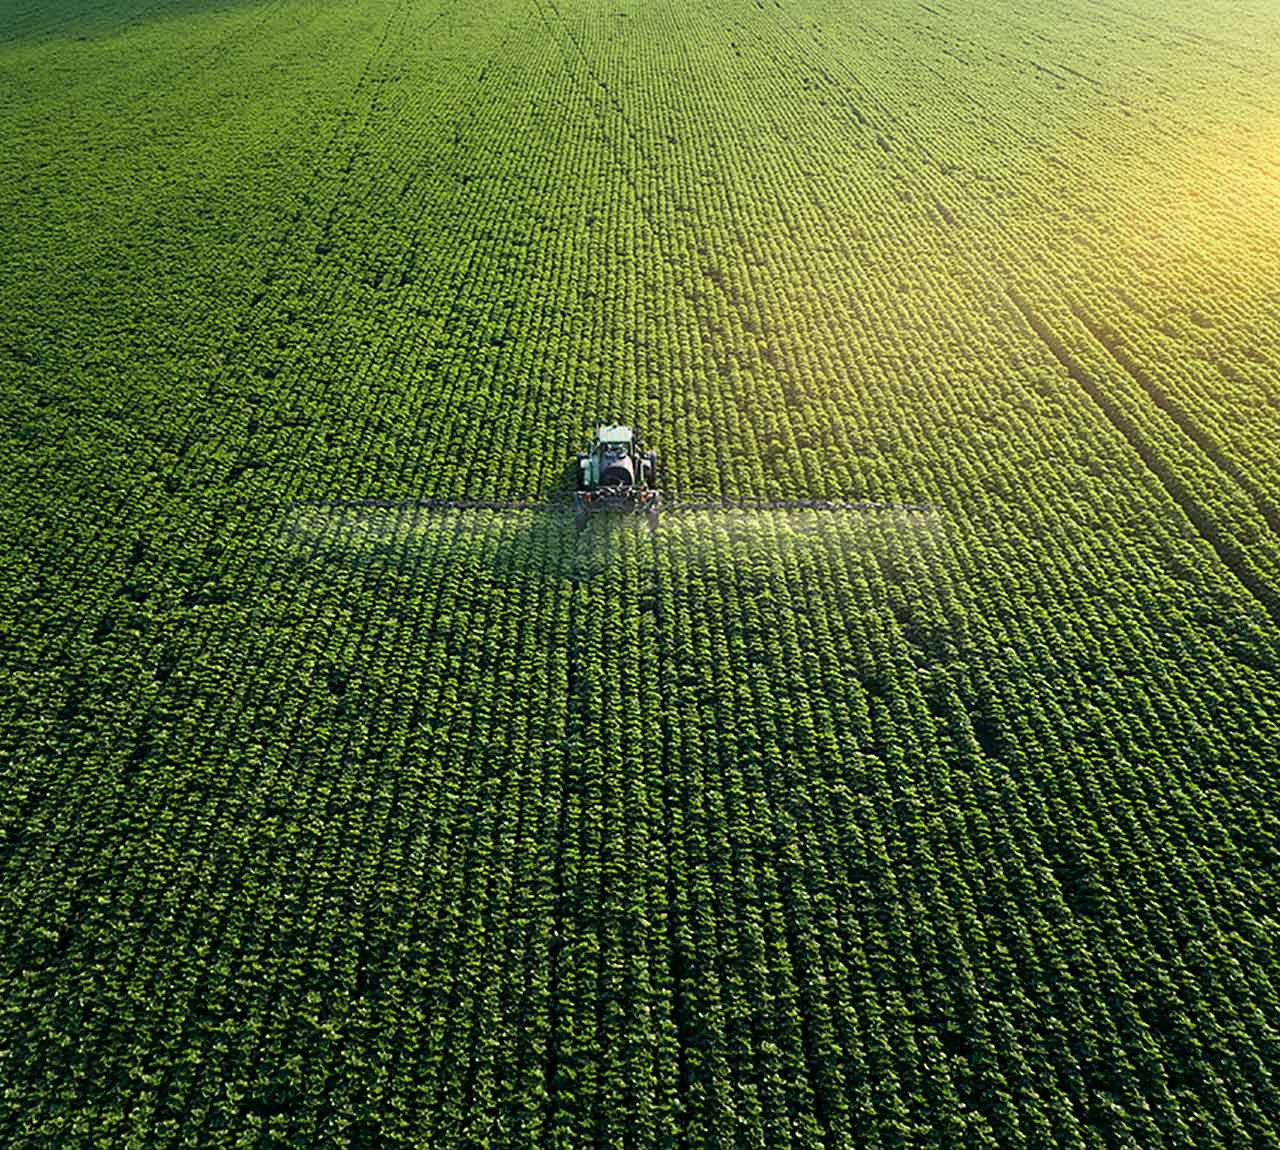 Tracking shot. Drone point of view of a Tractor spraying on a cultivated field. Small Business.